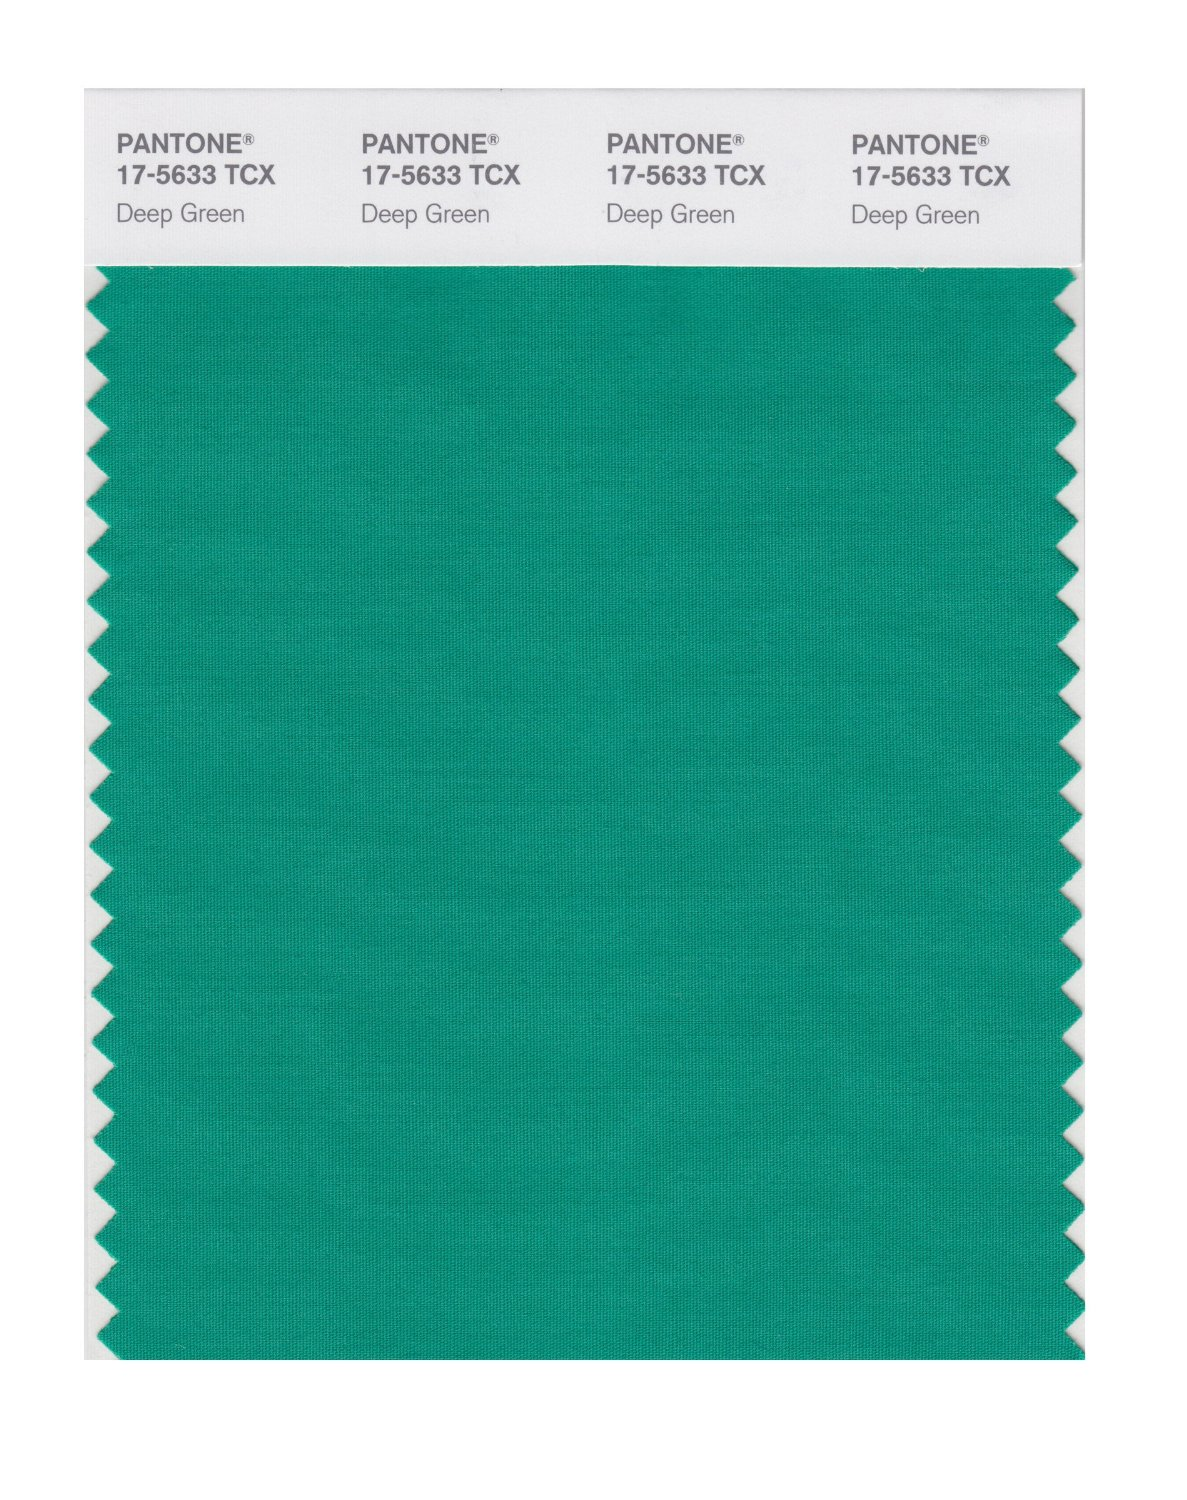 Pantone Smart Swatch 17-5633 Deep Green